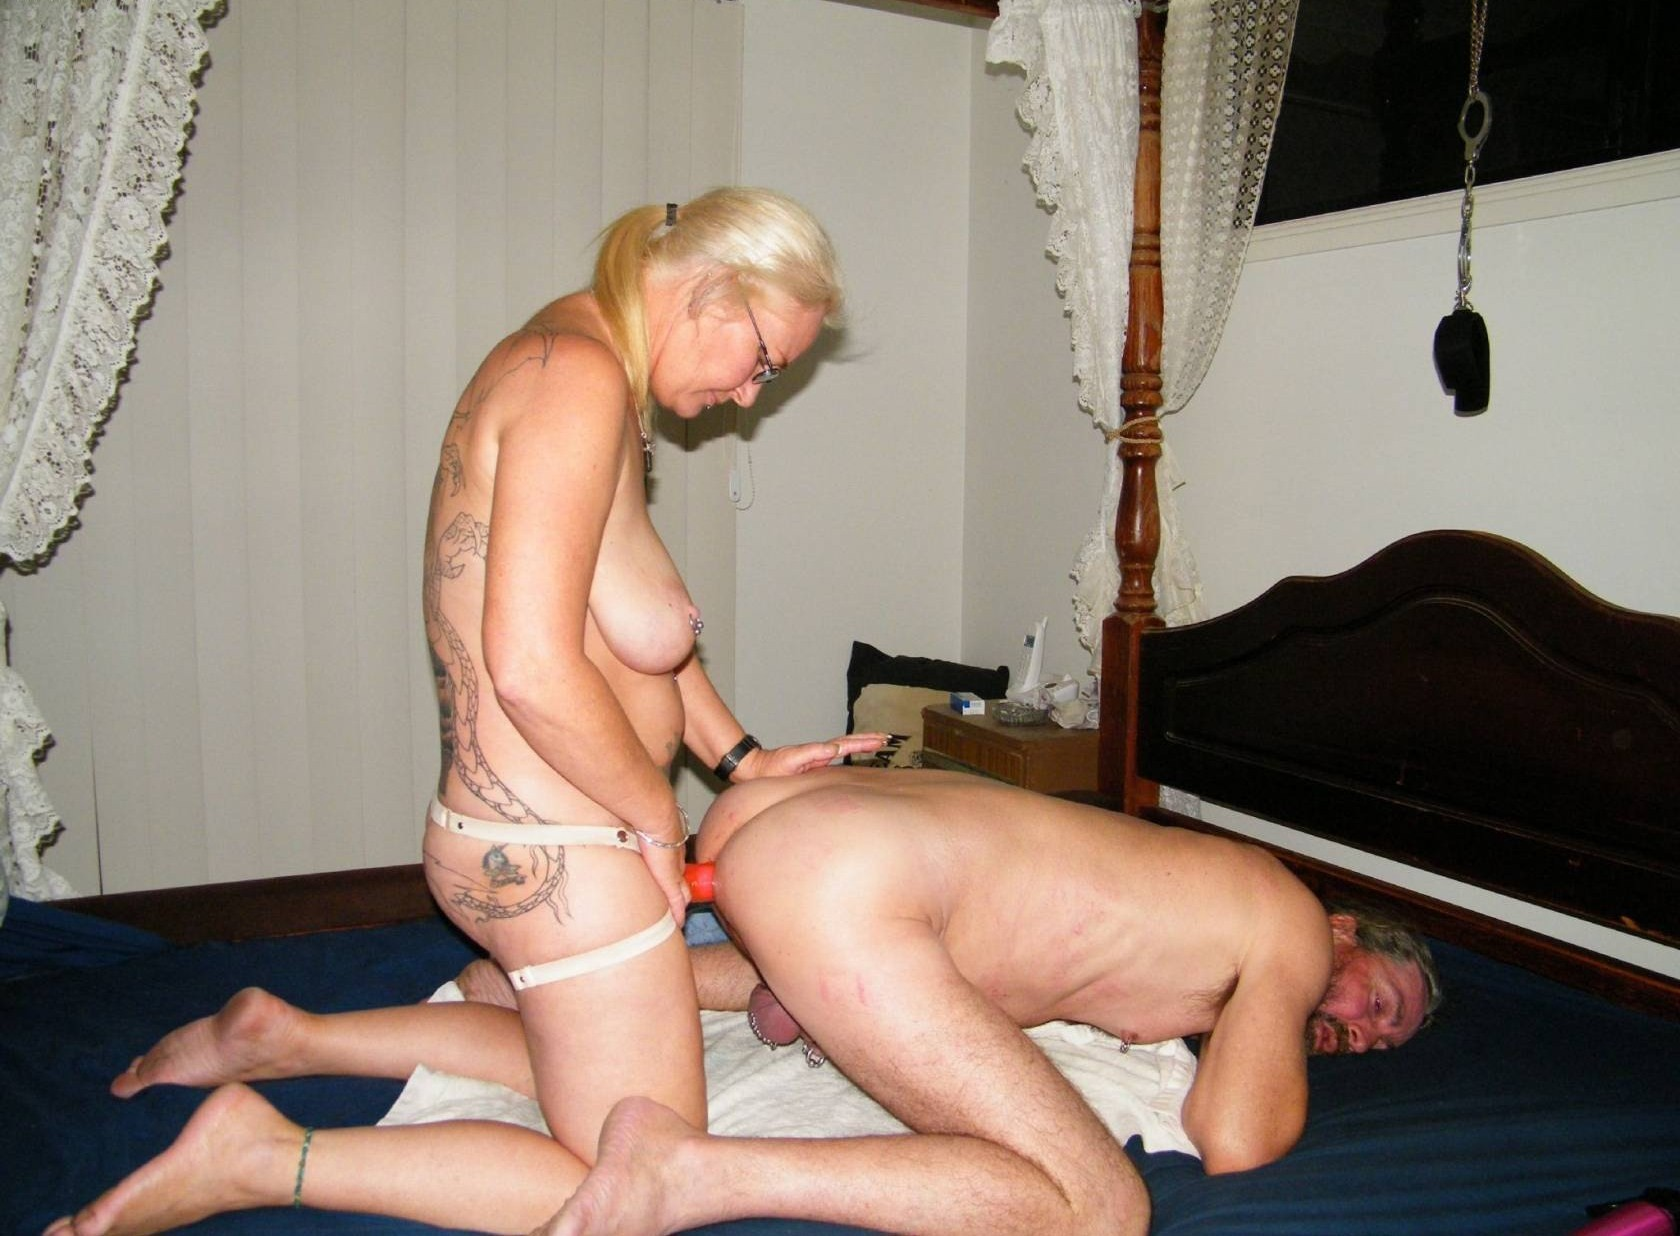 Husband licking wife s clit